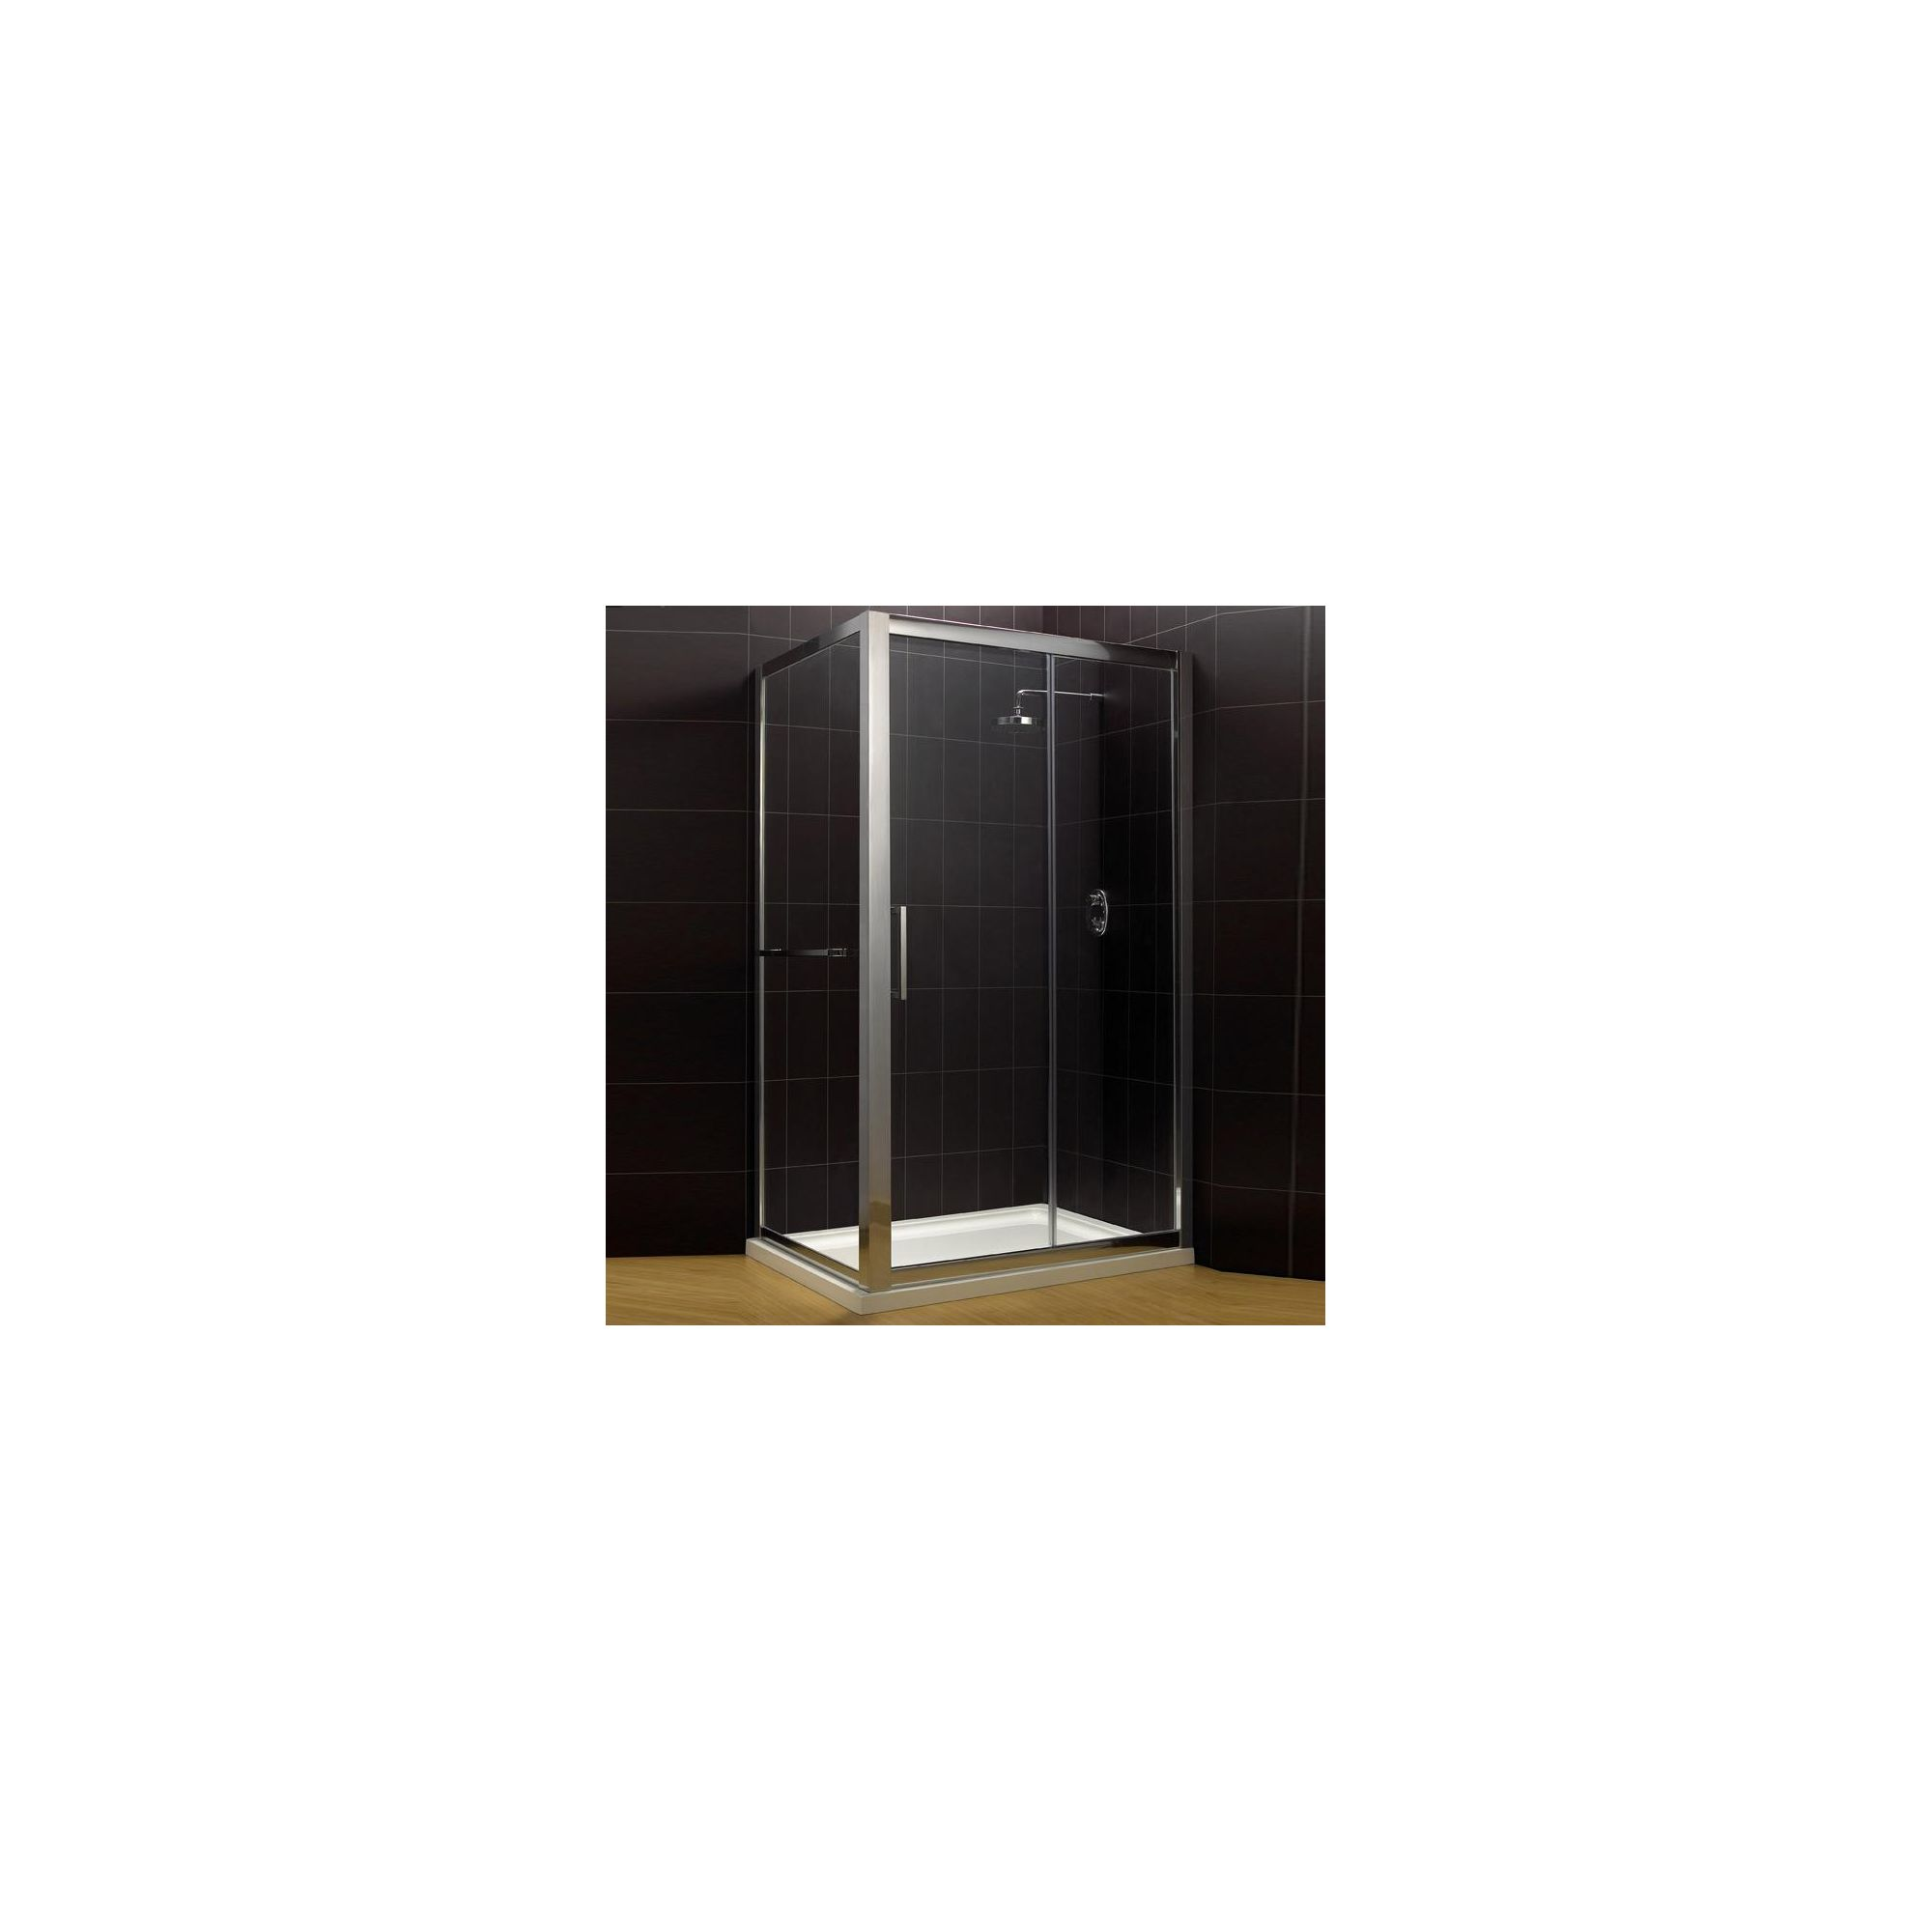 Duchy Supreme Silver Sliding Door Shower Enclosure with Towel Rail, 1400mm x 760mm, Standard Tray, 8mm Glass at Tesco Direct